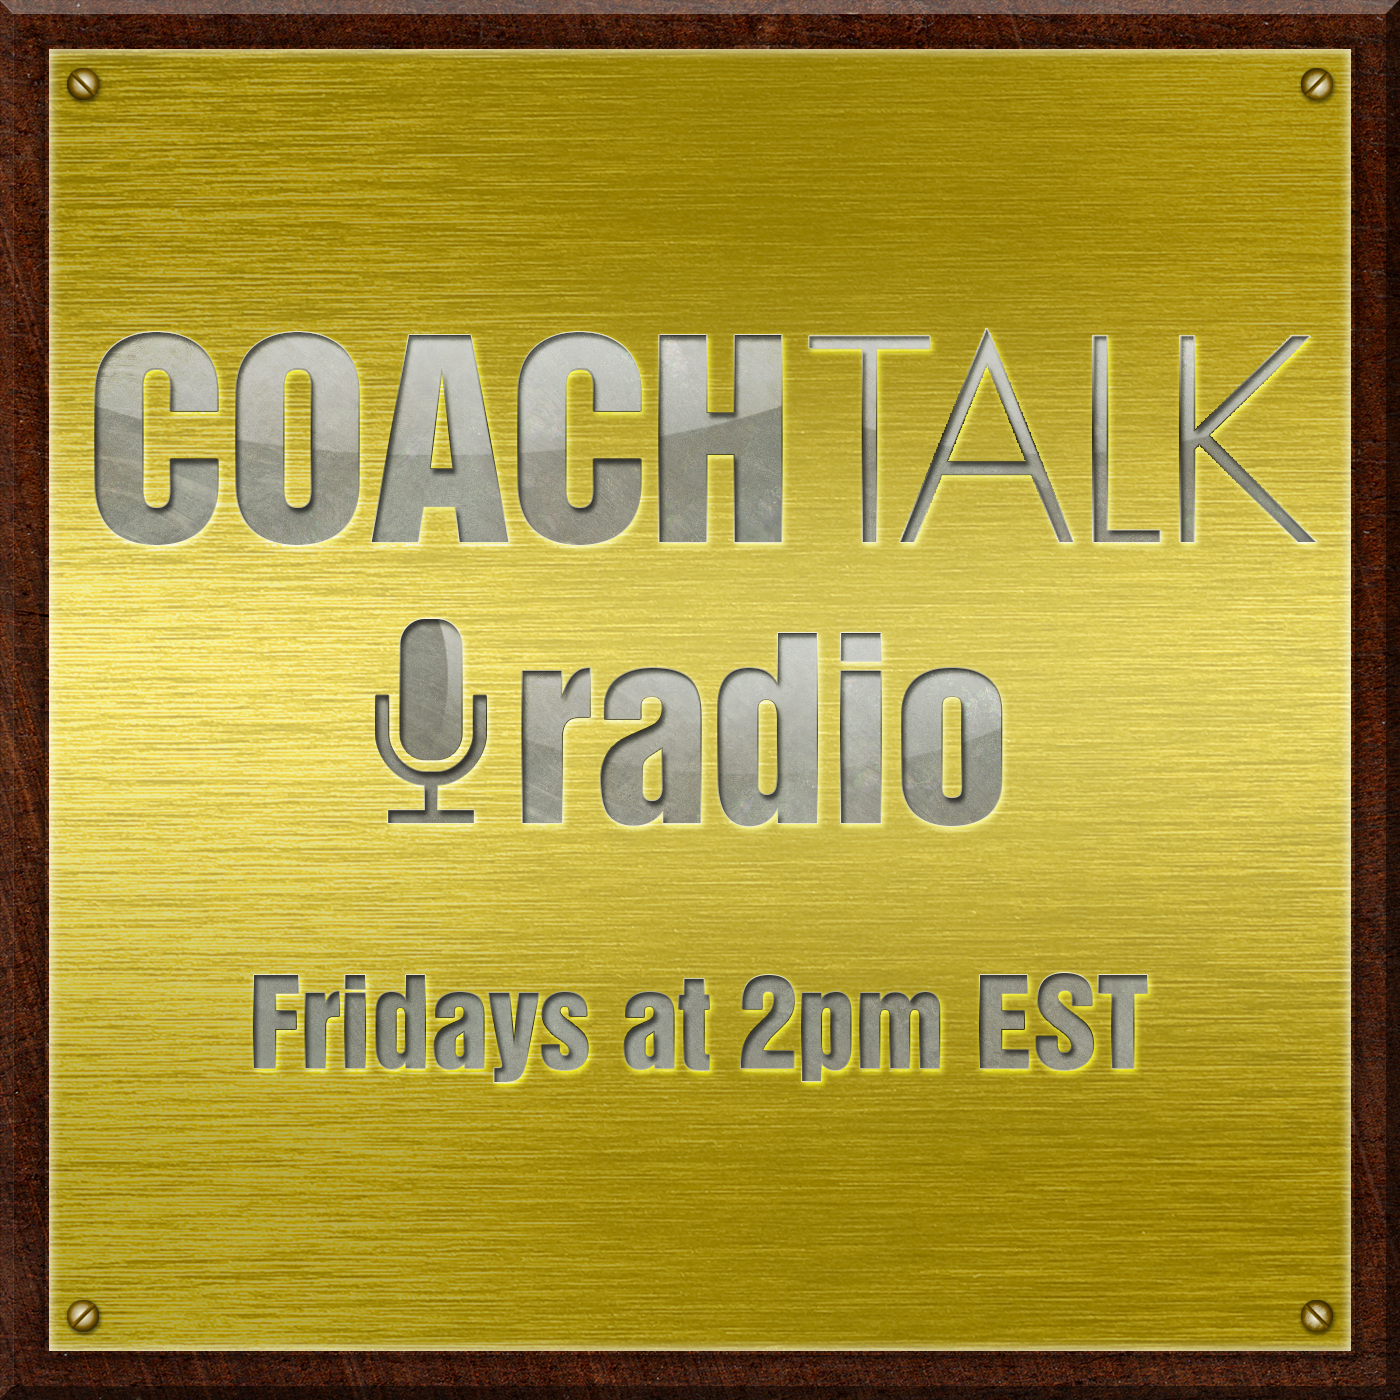 Coach Talk Radio